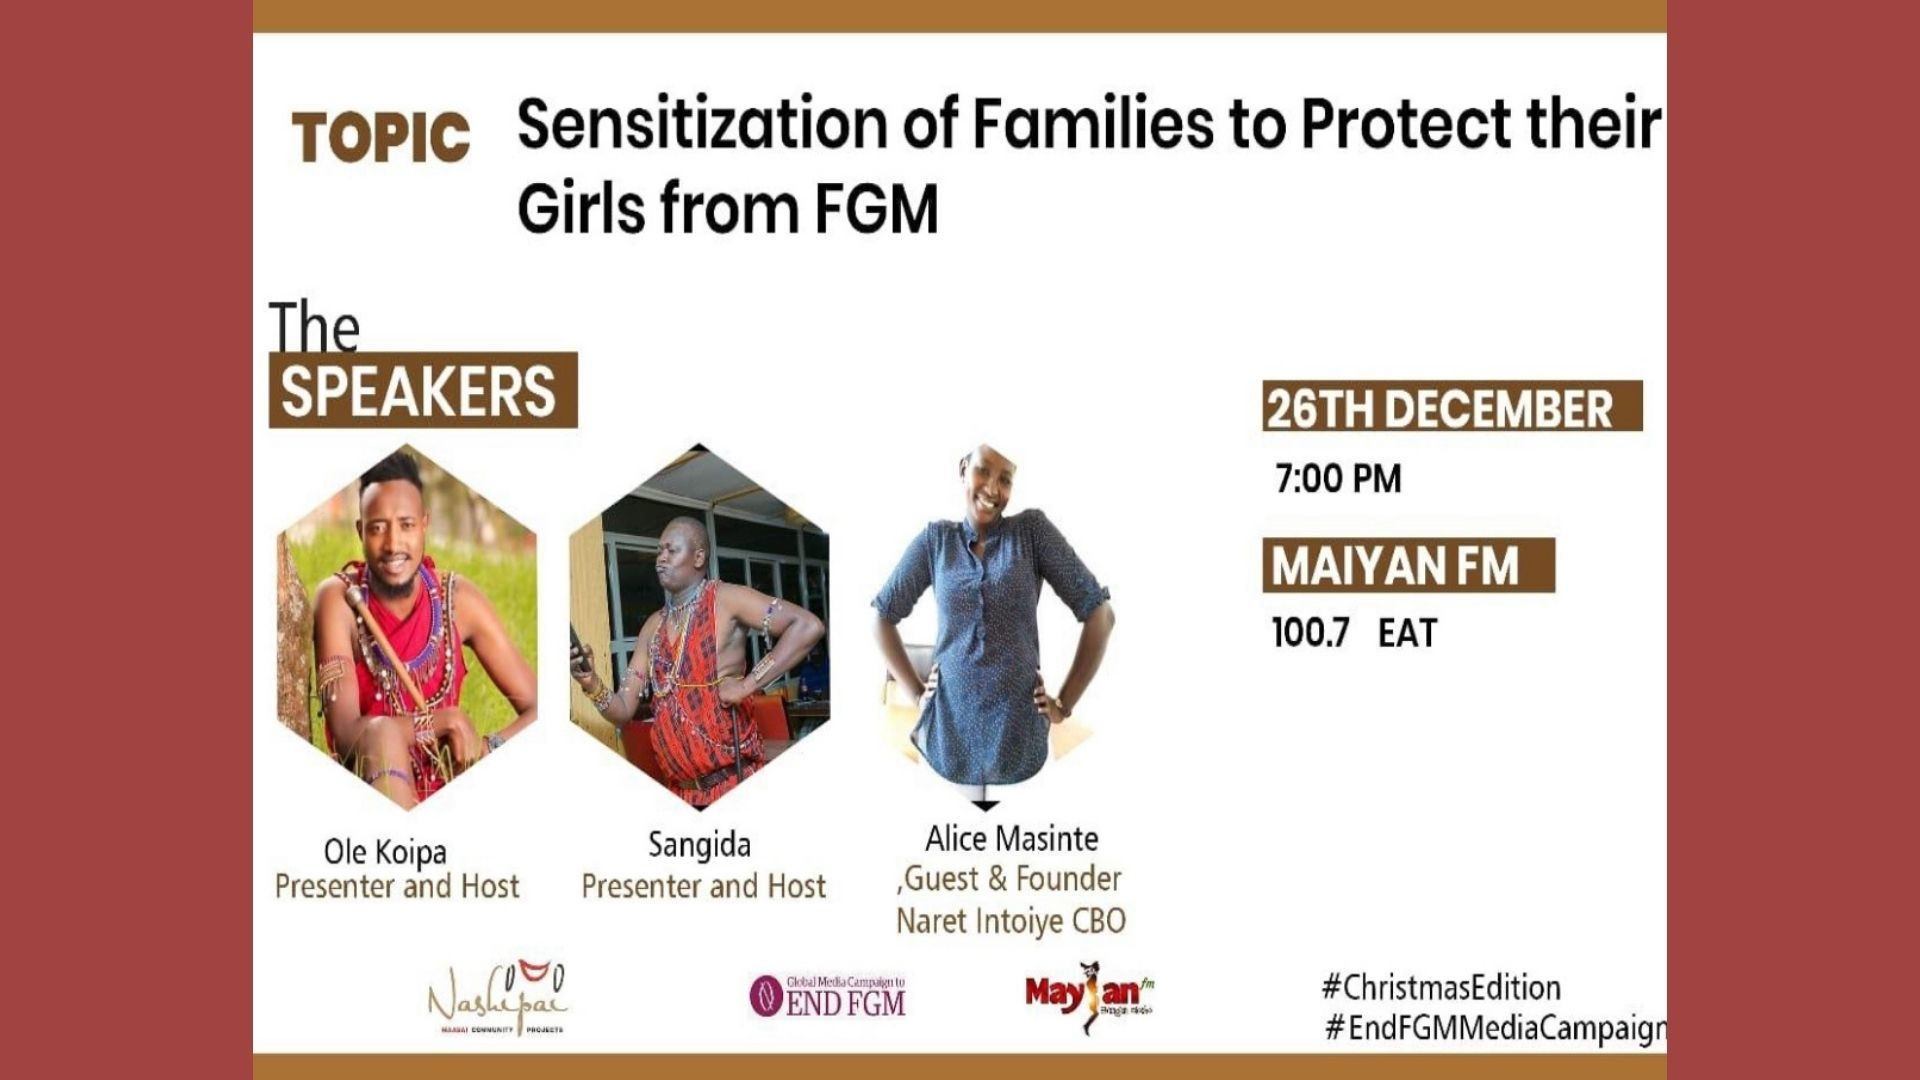 Male caller on Radio asks how he can report FGM cases, Maasai Land, Kenya